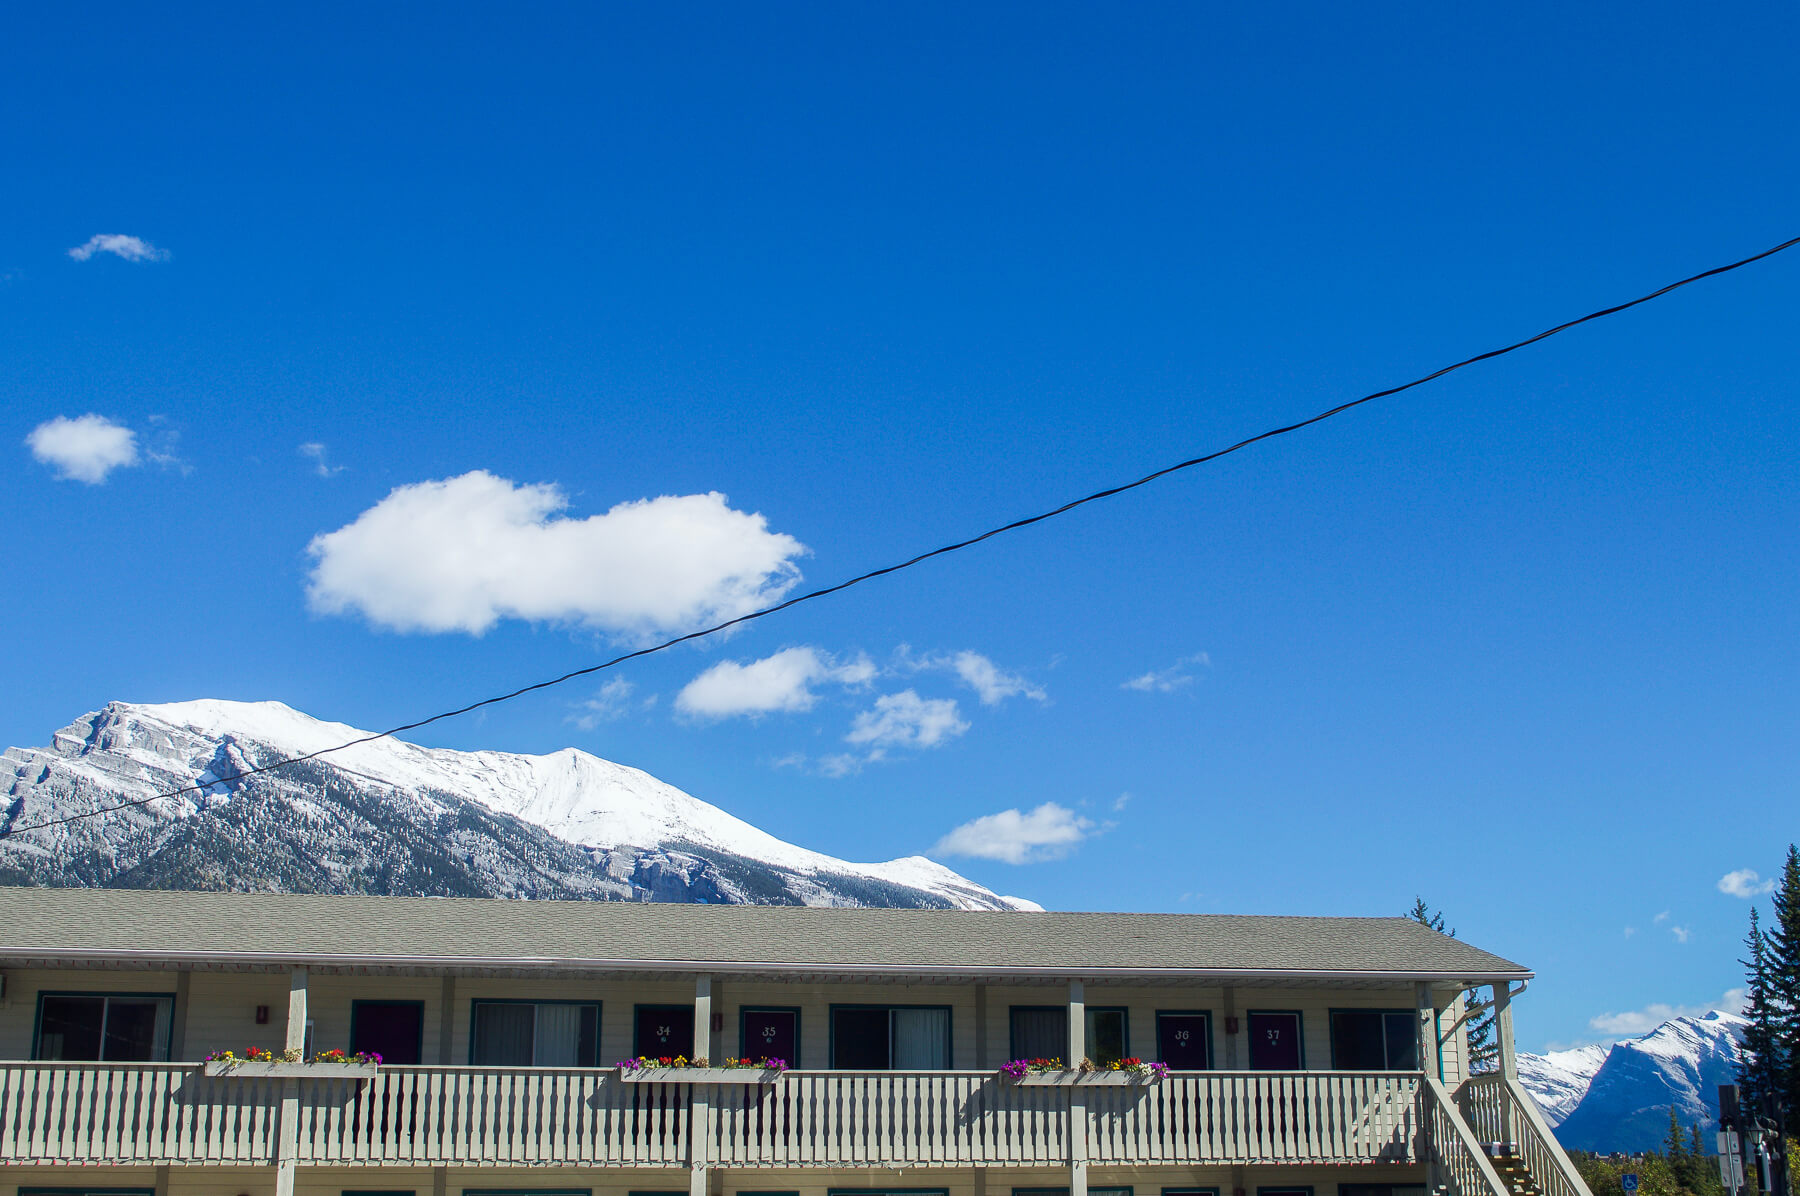 The top floor of a motel with the snowy mountains peeking behind it